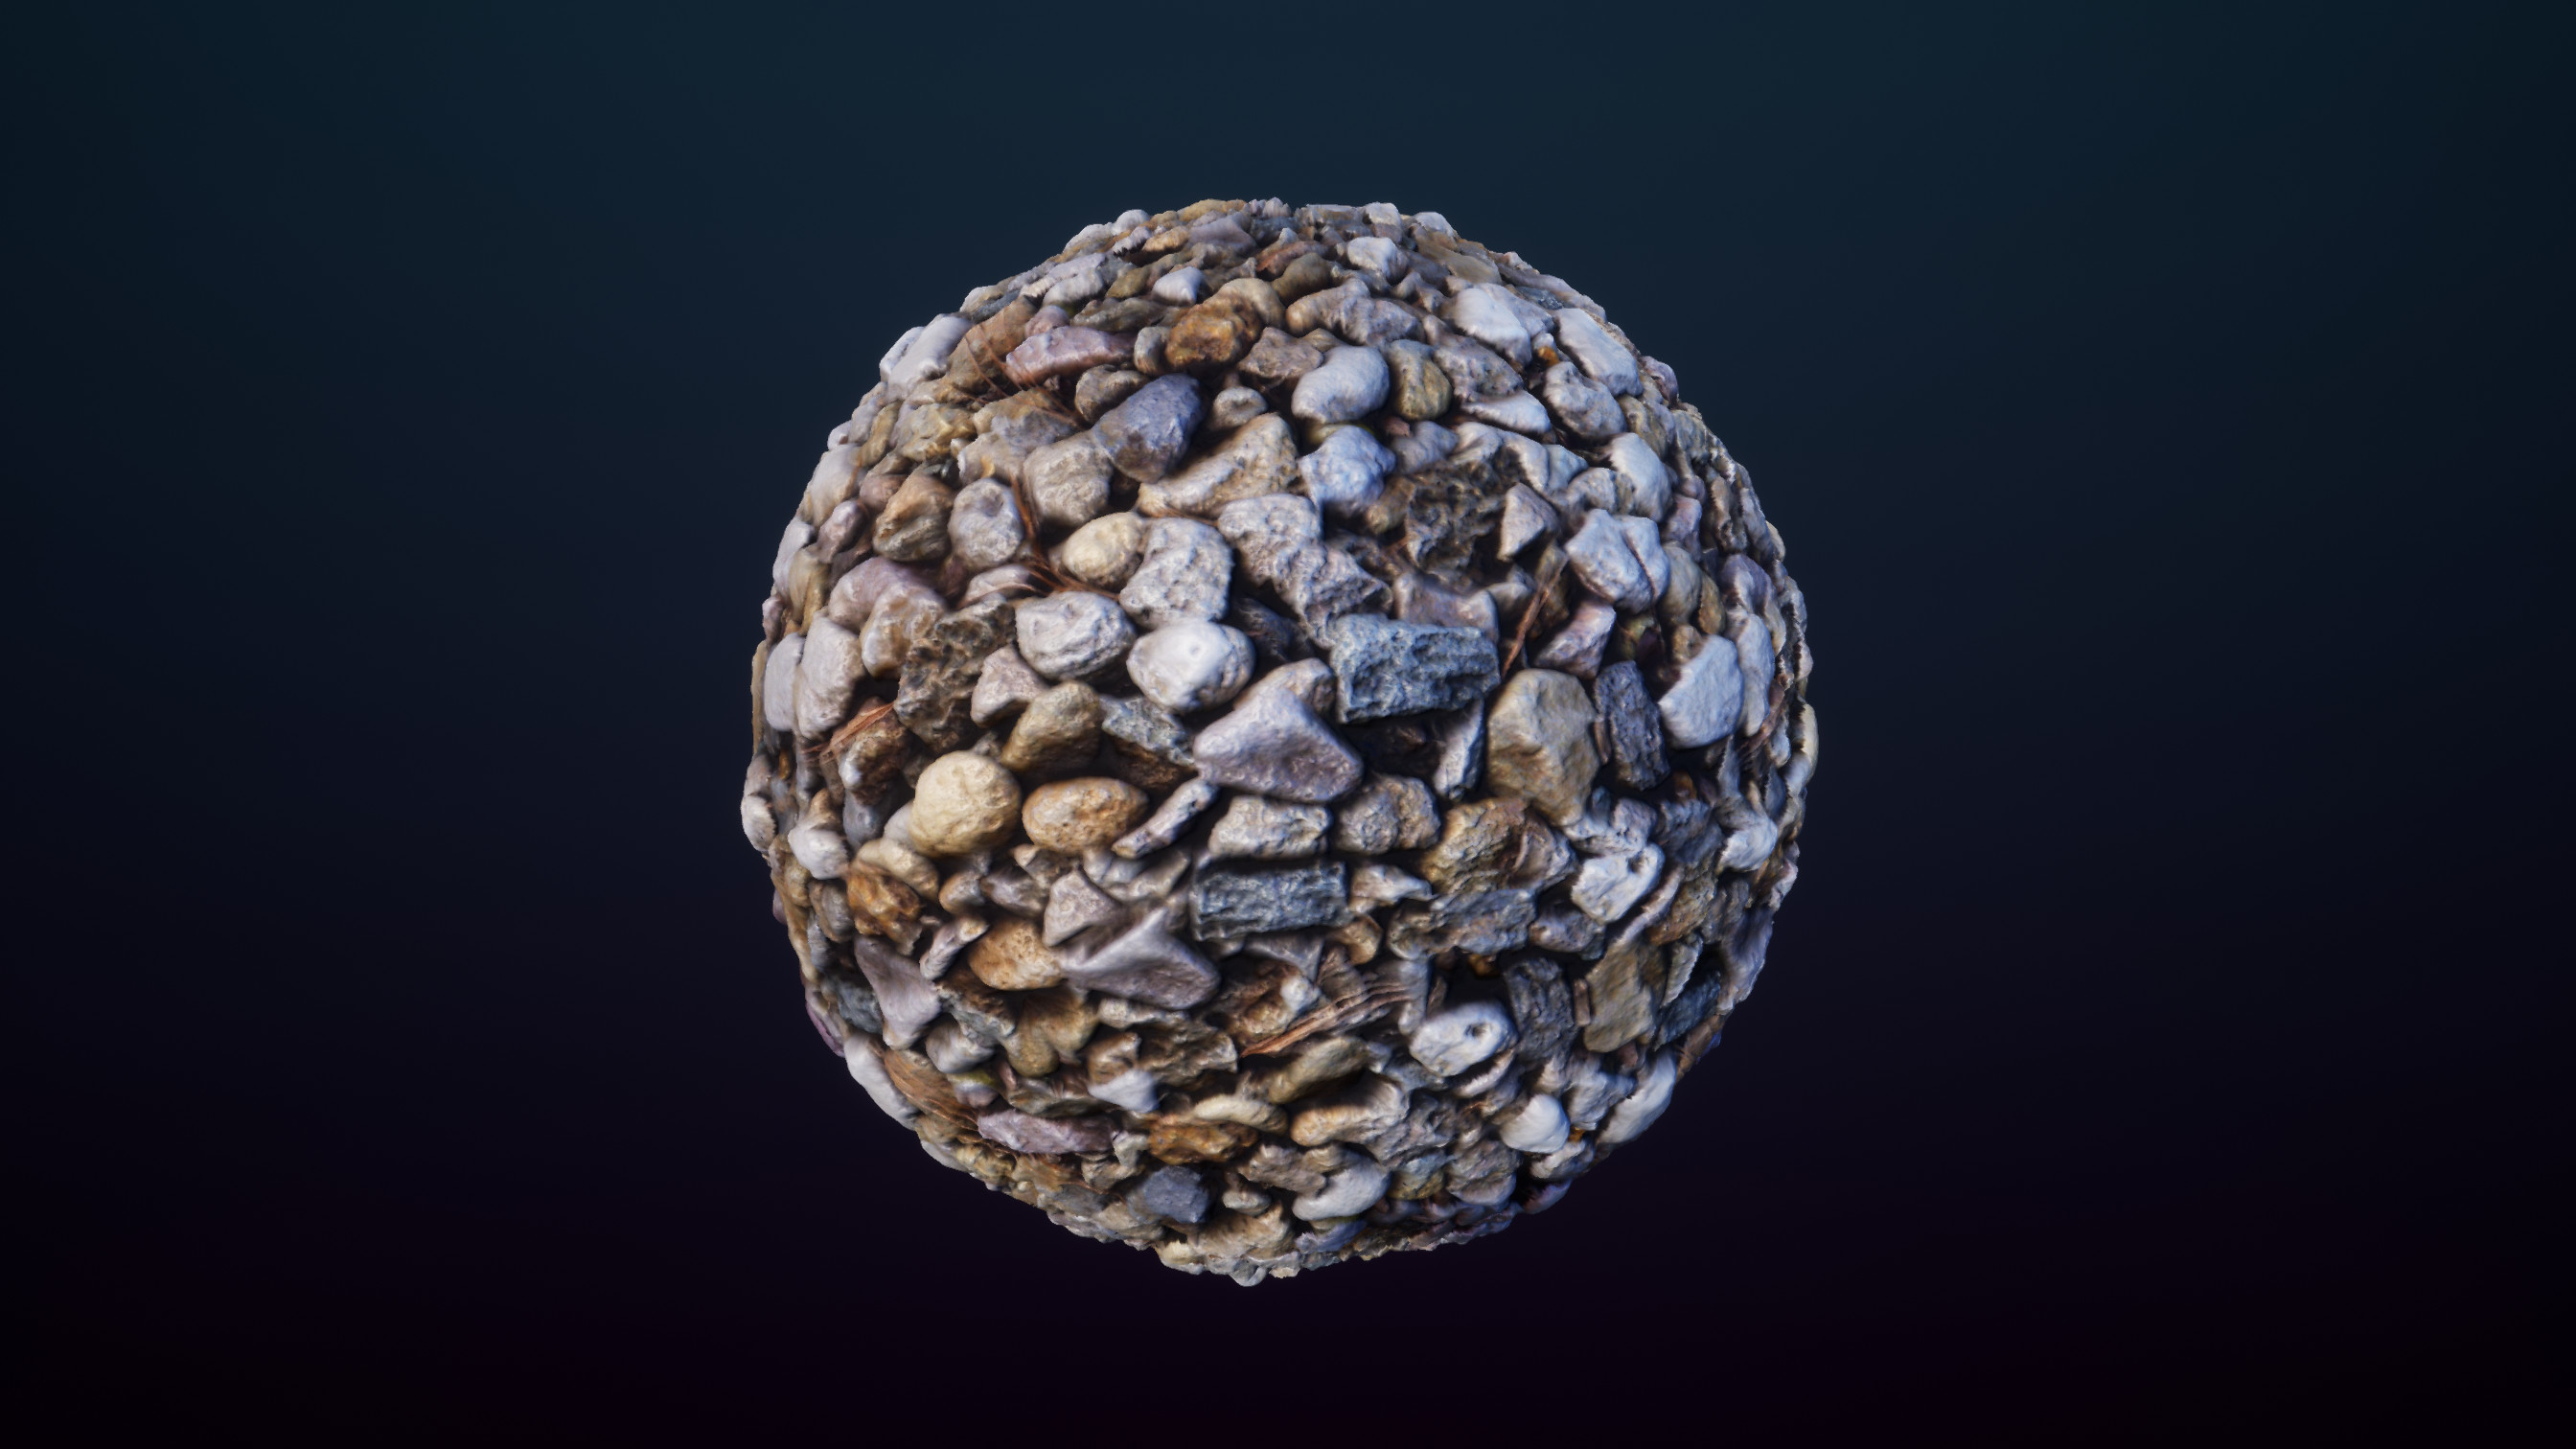 Finished product on a high-poly material sphere